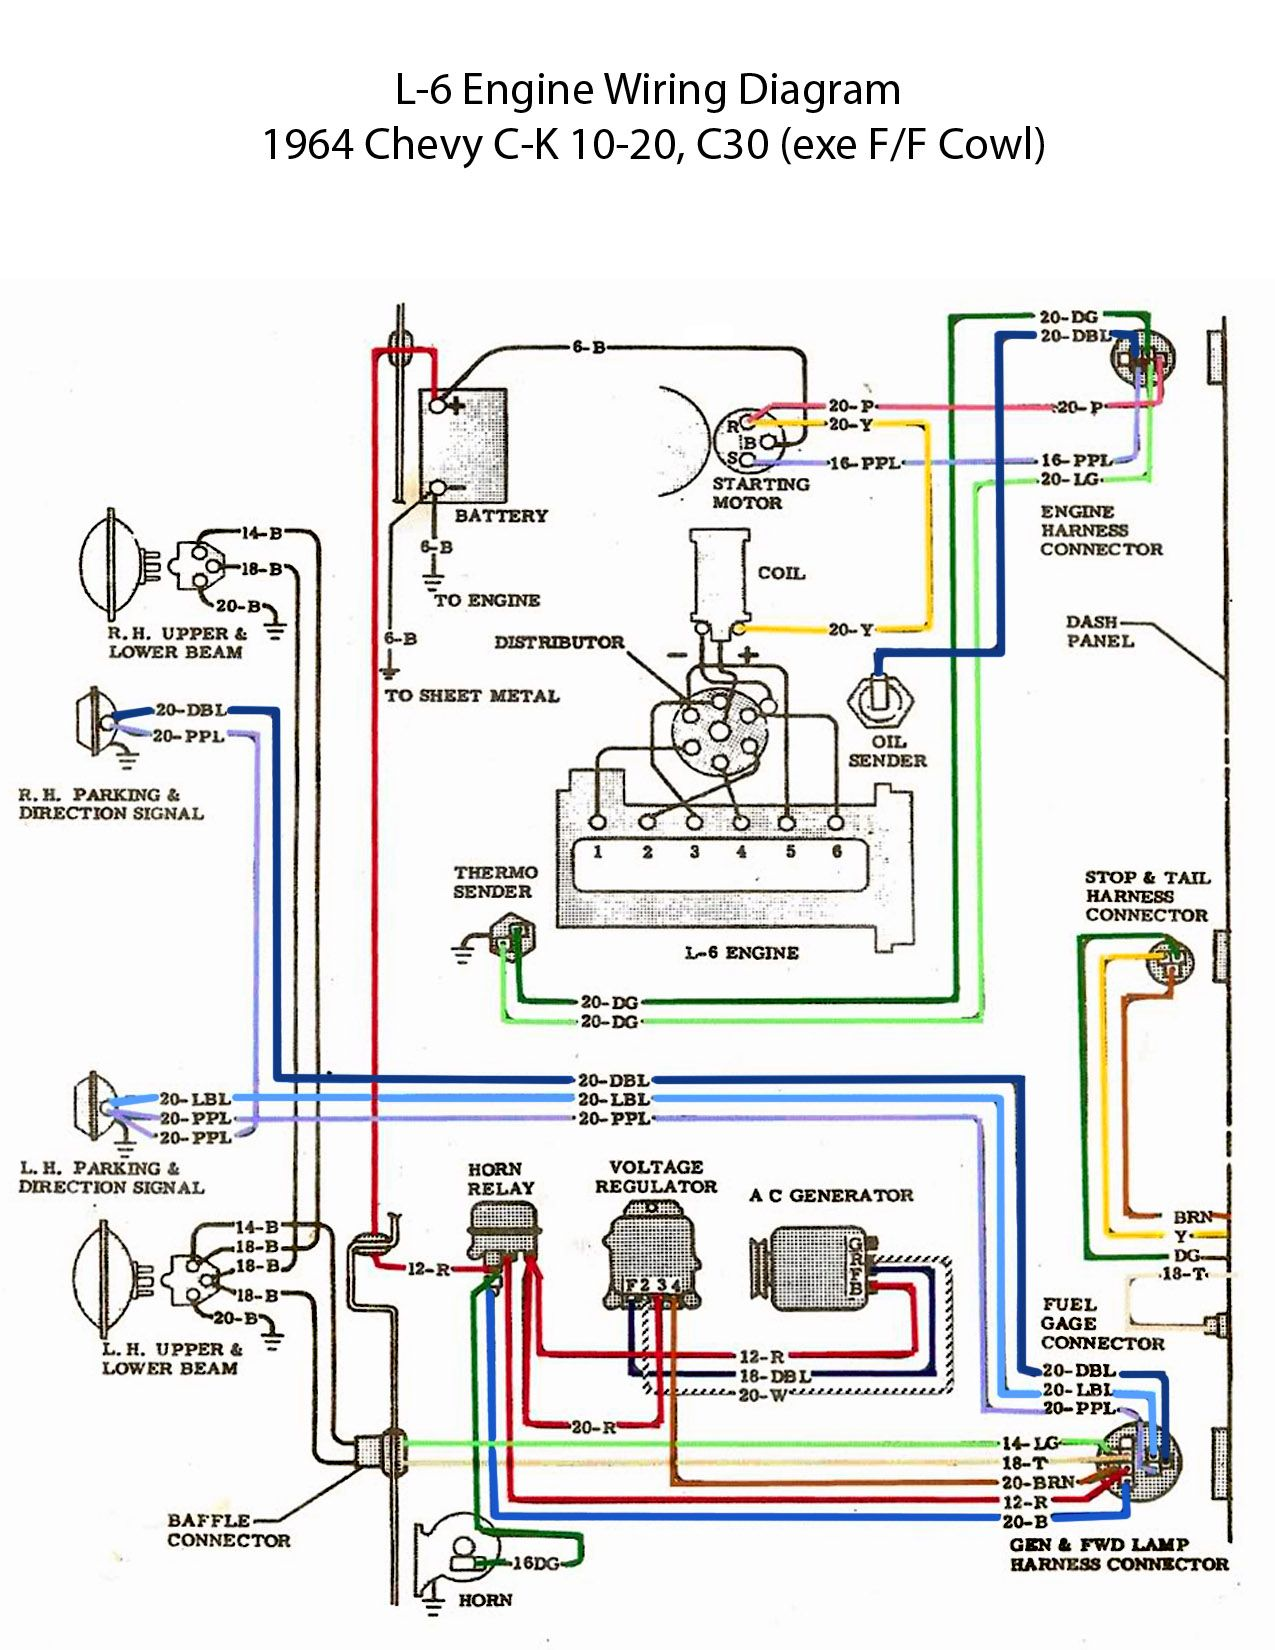 1960 c10 wiring diagram wiring diagrams 1956 ford wiring diagram 1960 chevy wiring diagram [ 1275 x 1650 Pixel ]